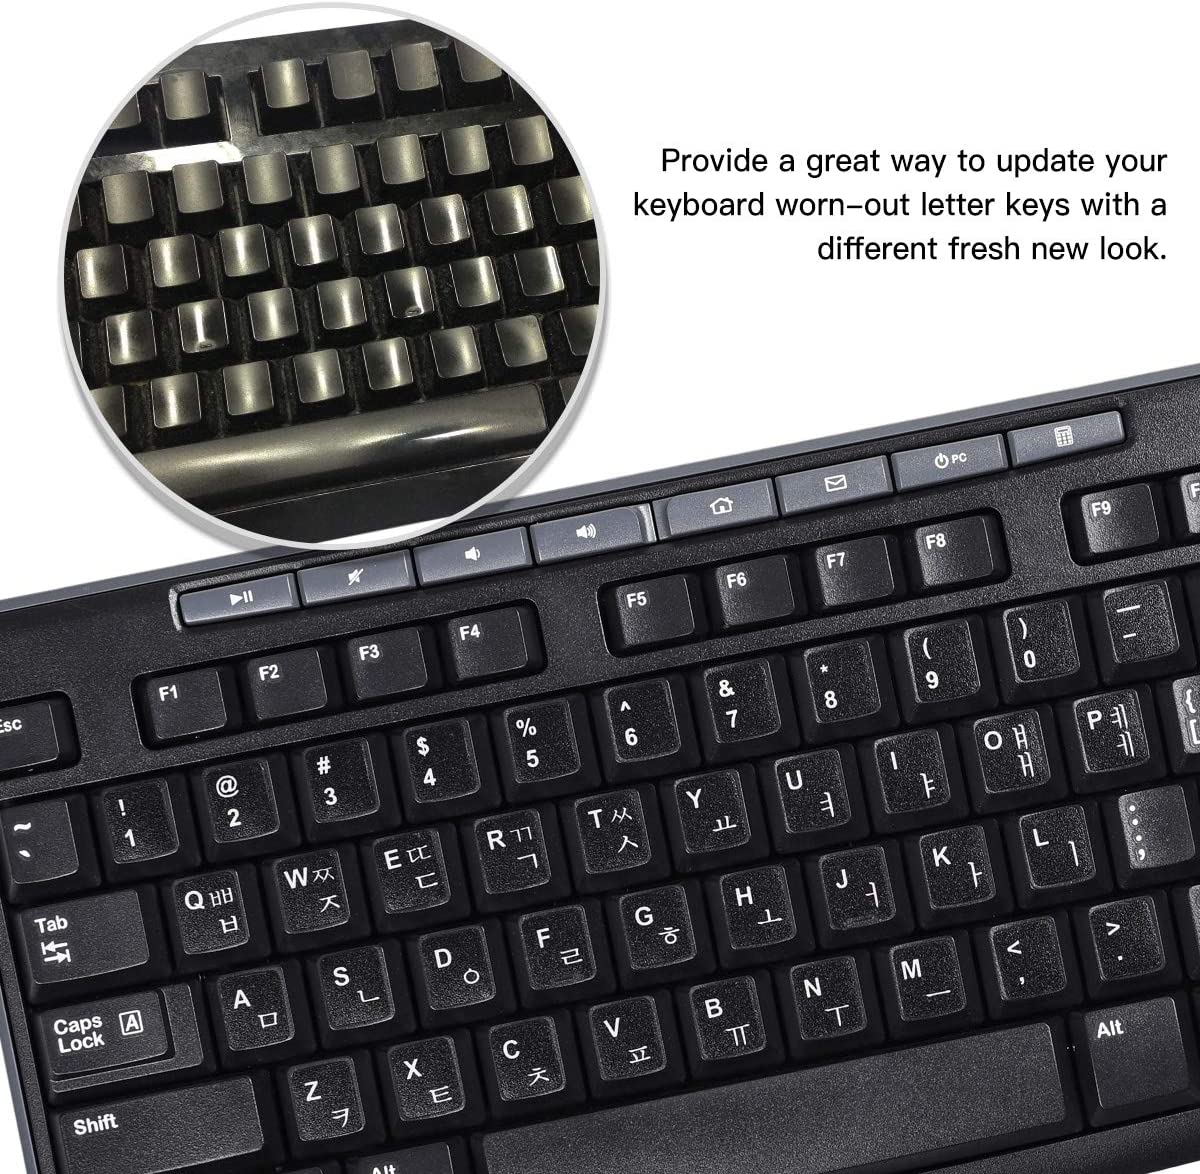 3 Pack Transparent Replacement Russian Keyboard Stickers Transparent Background with Organge Lettering Keyboard Stickers for Laptop PC Computer Desktop Notebook Keyboards Russian Layout